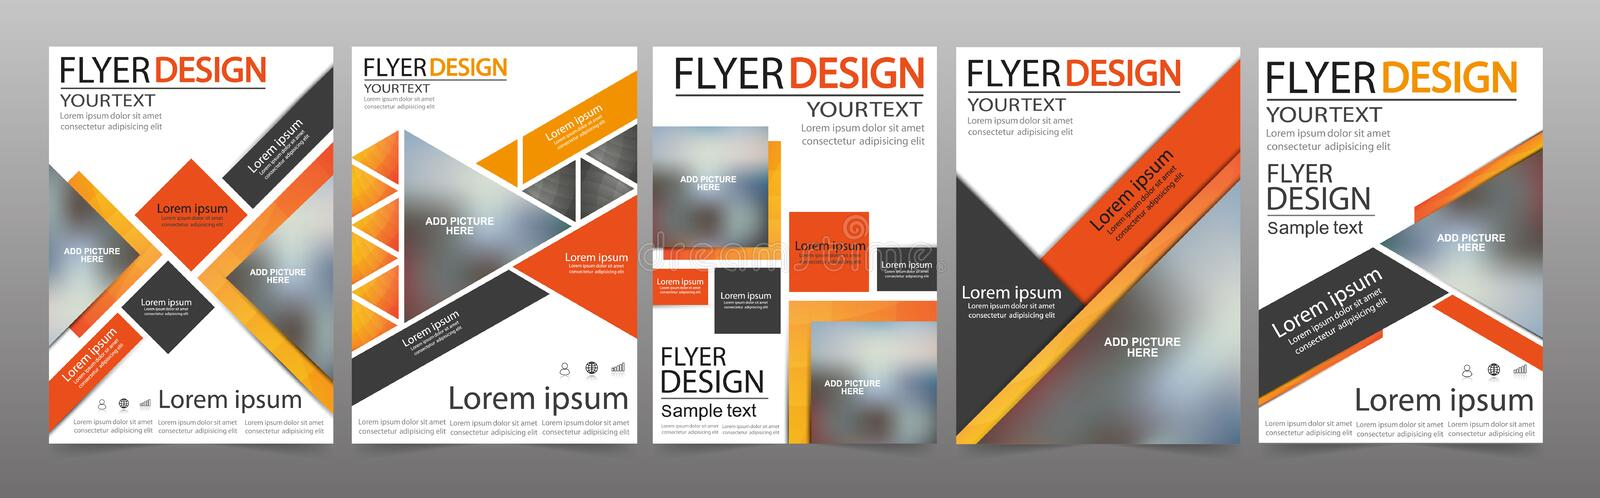 Set of Flyer design. Can be used for magazine cover, business mockup, education, presentation, report. Vector royalty free illustration